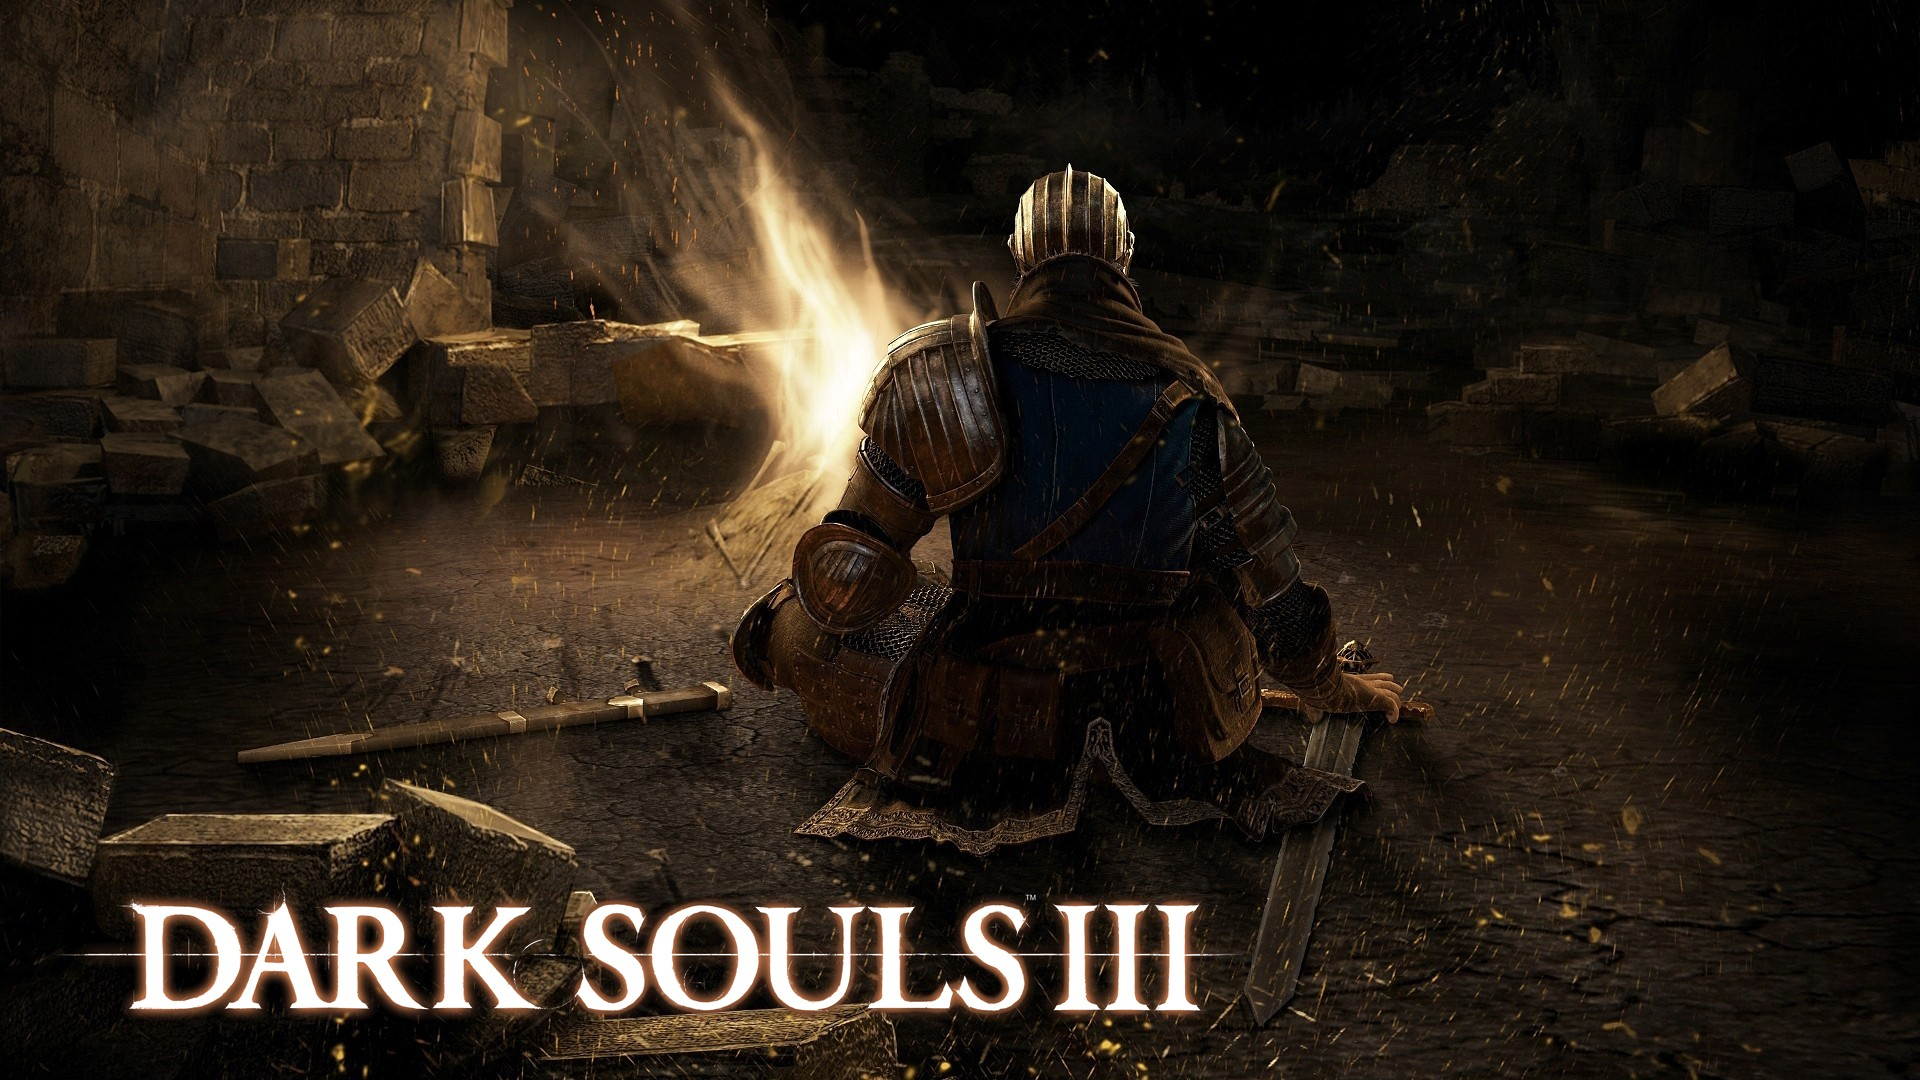 dark souls wallpaper breaking - photo #14